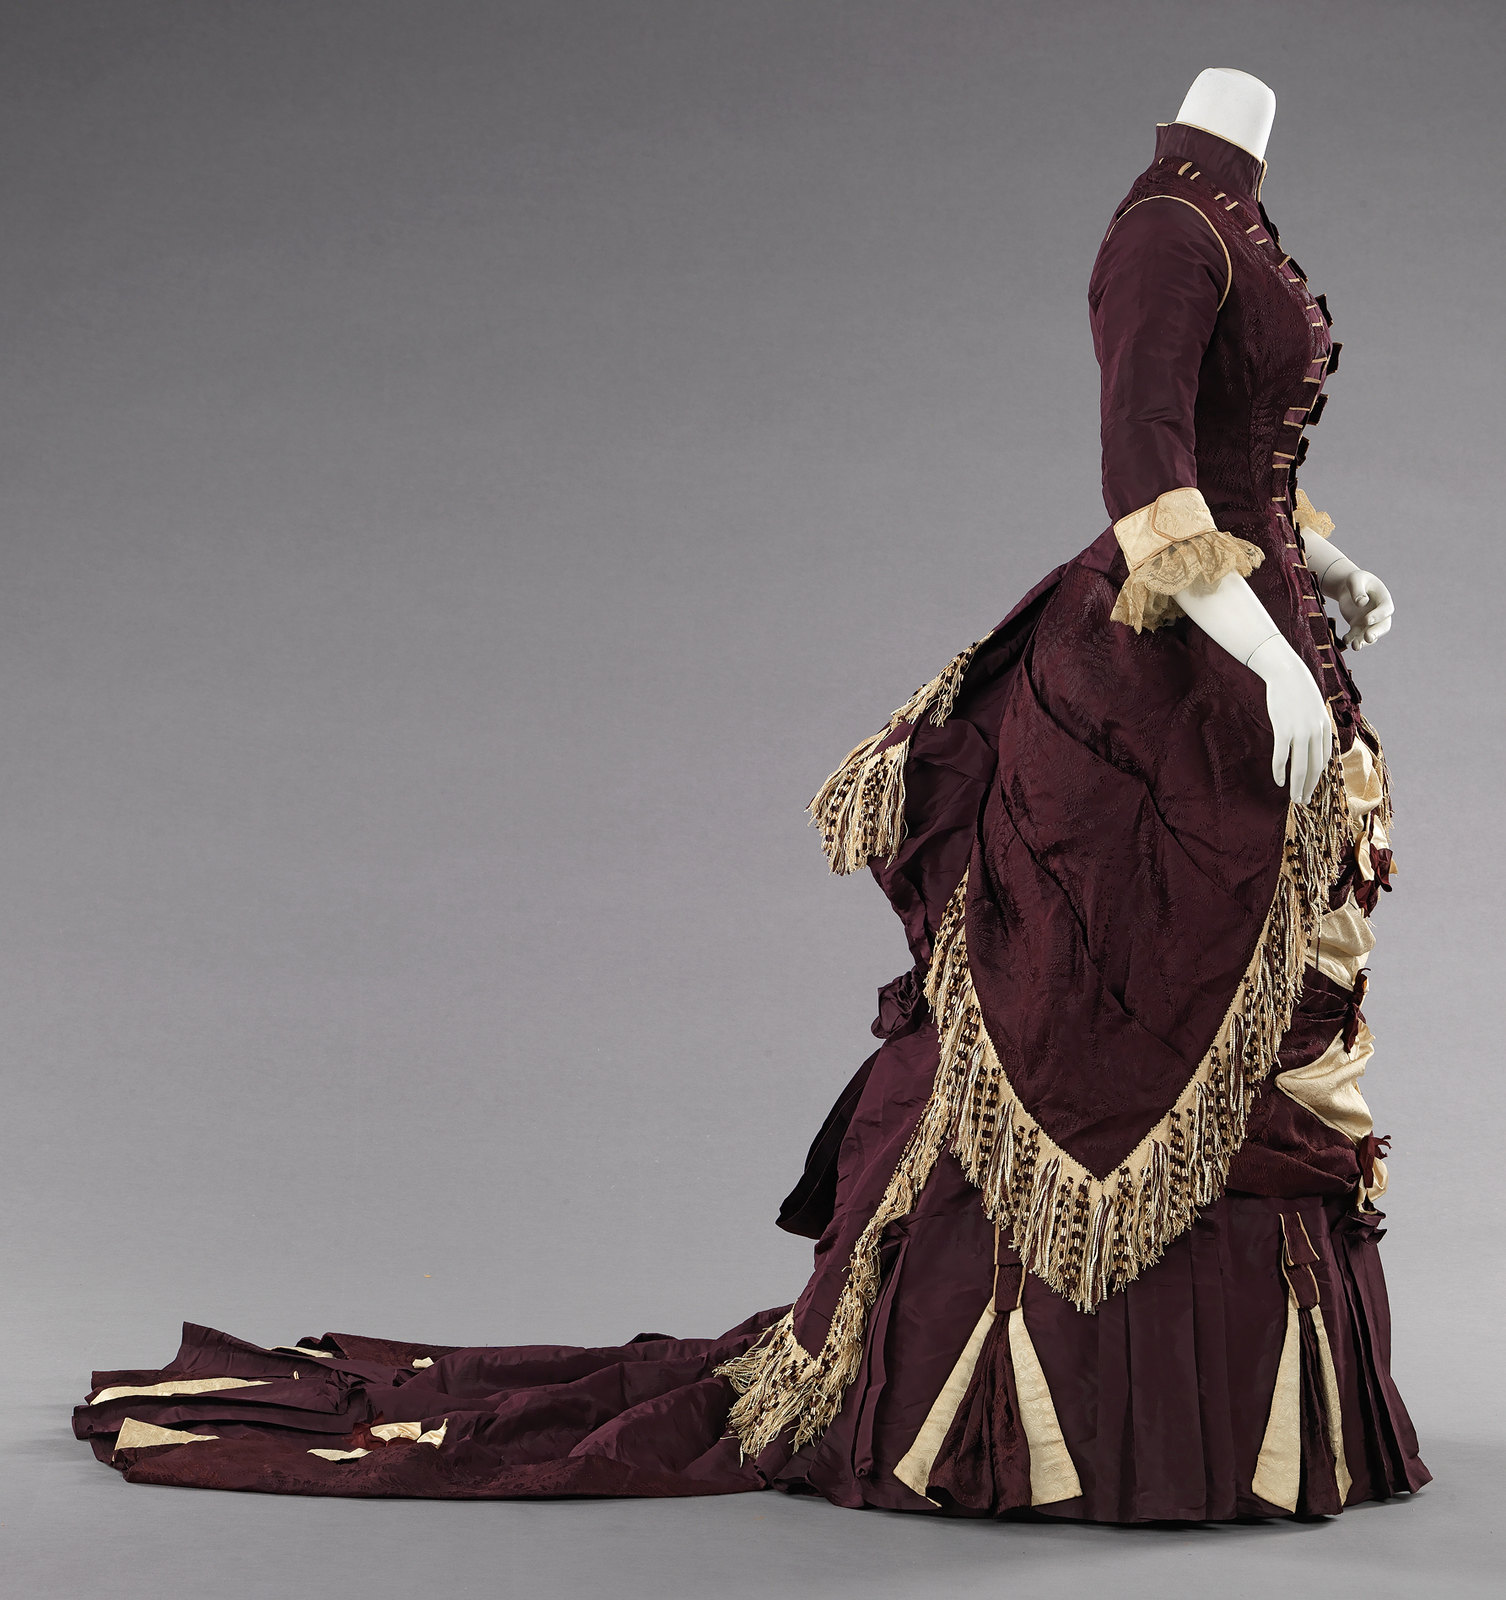 c. 1880. American. Silk, cotton. metmuseum